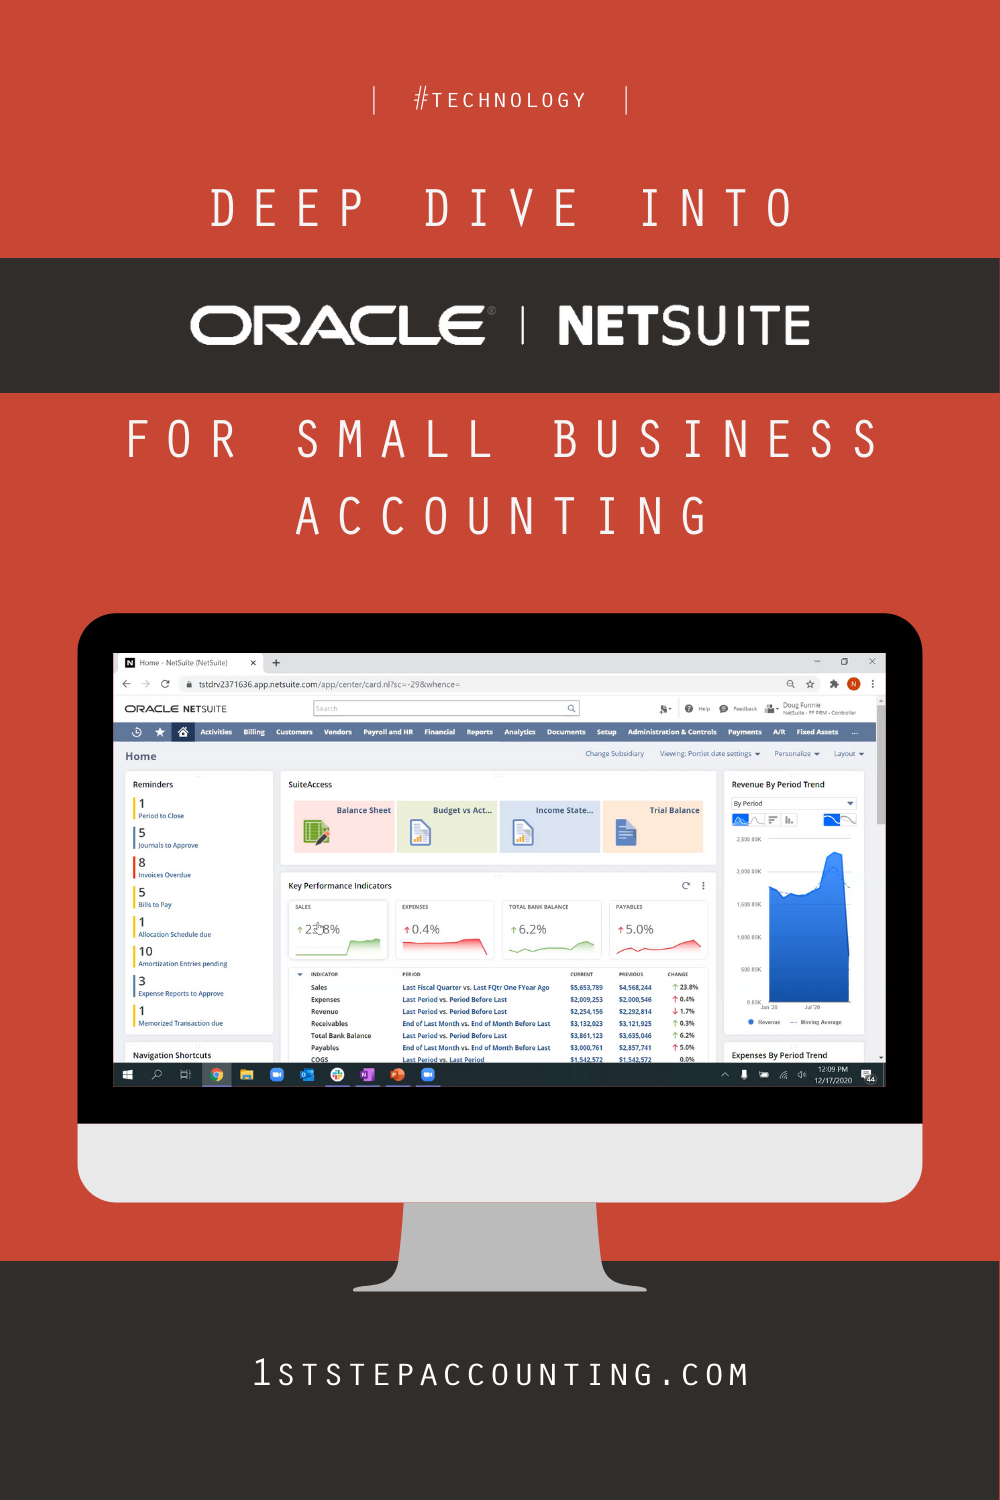 Deep Dive into Oracle NetSuite for small business accounting